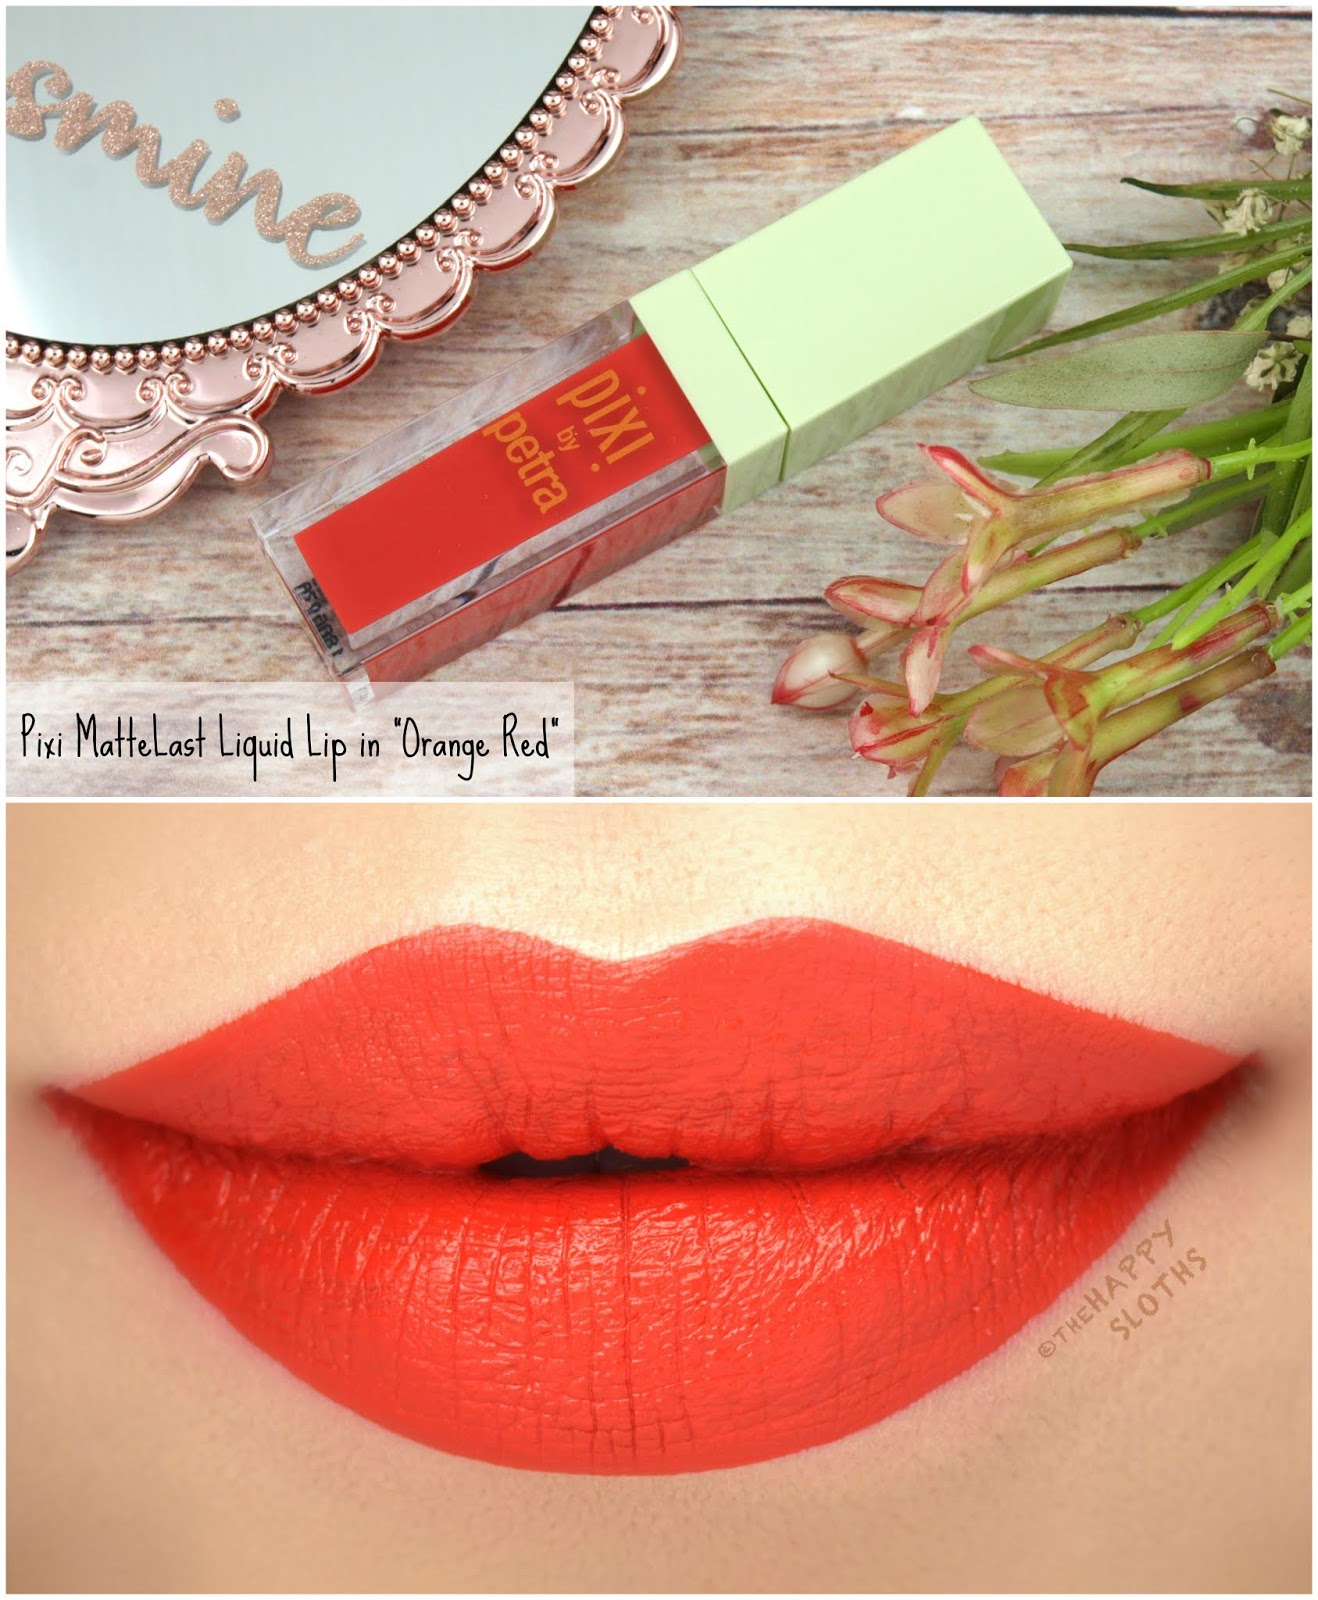 "Pixi | MatteLast Liquid Lip in ""Orange Red"": Review and Swatches"